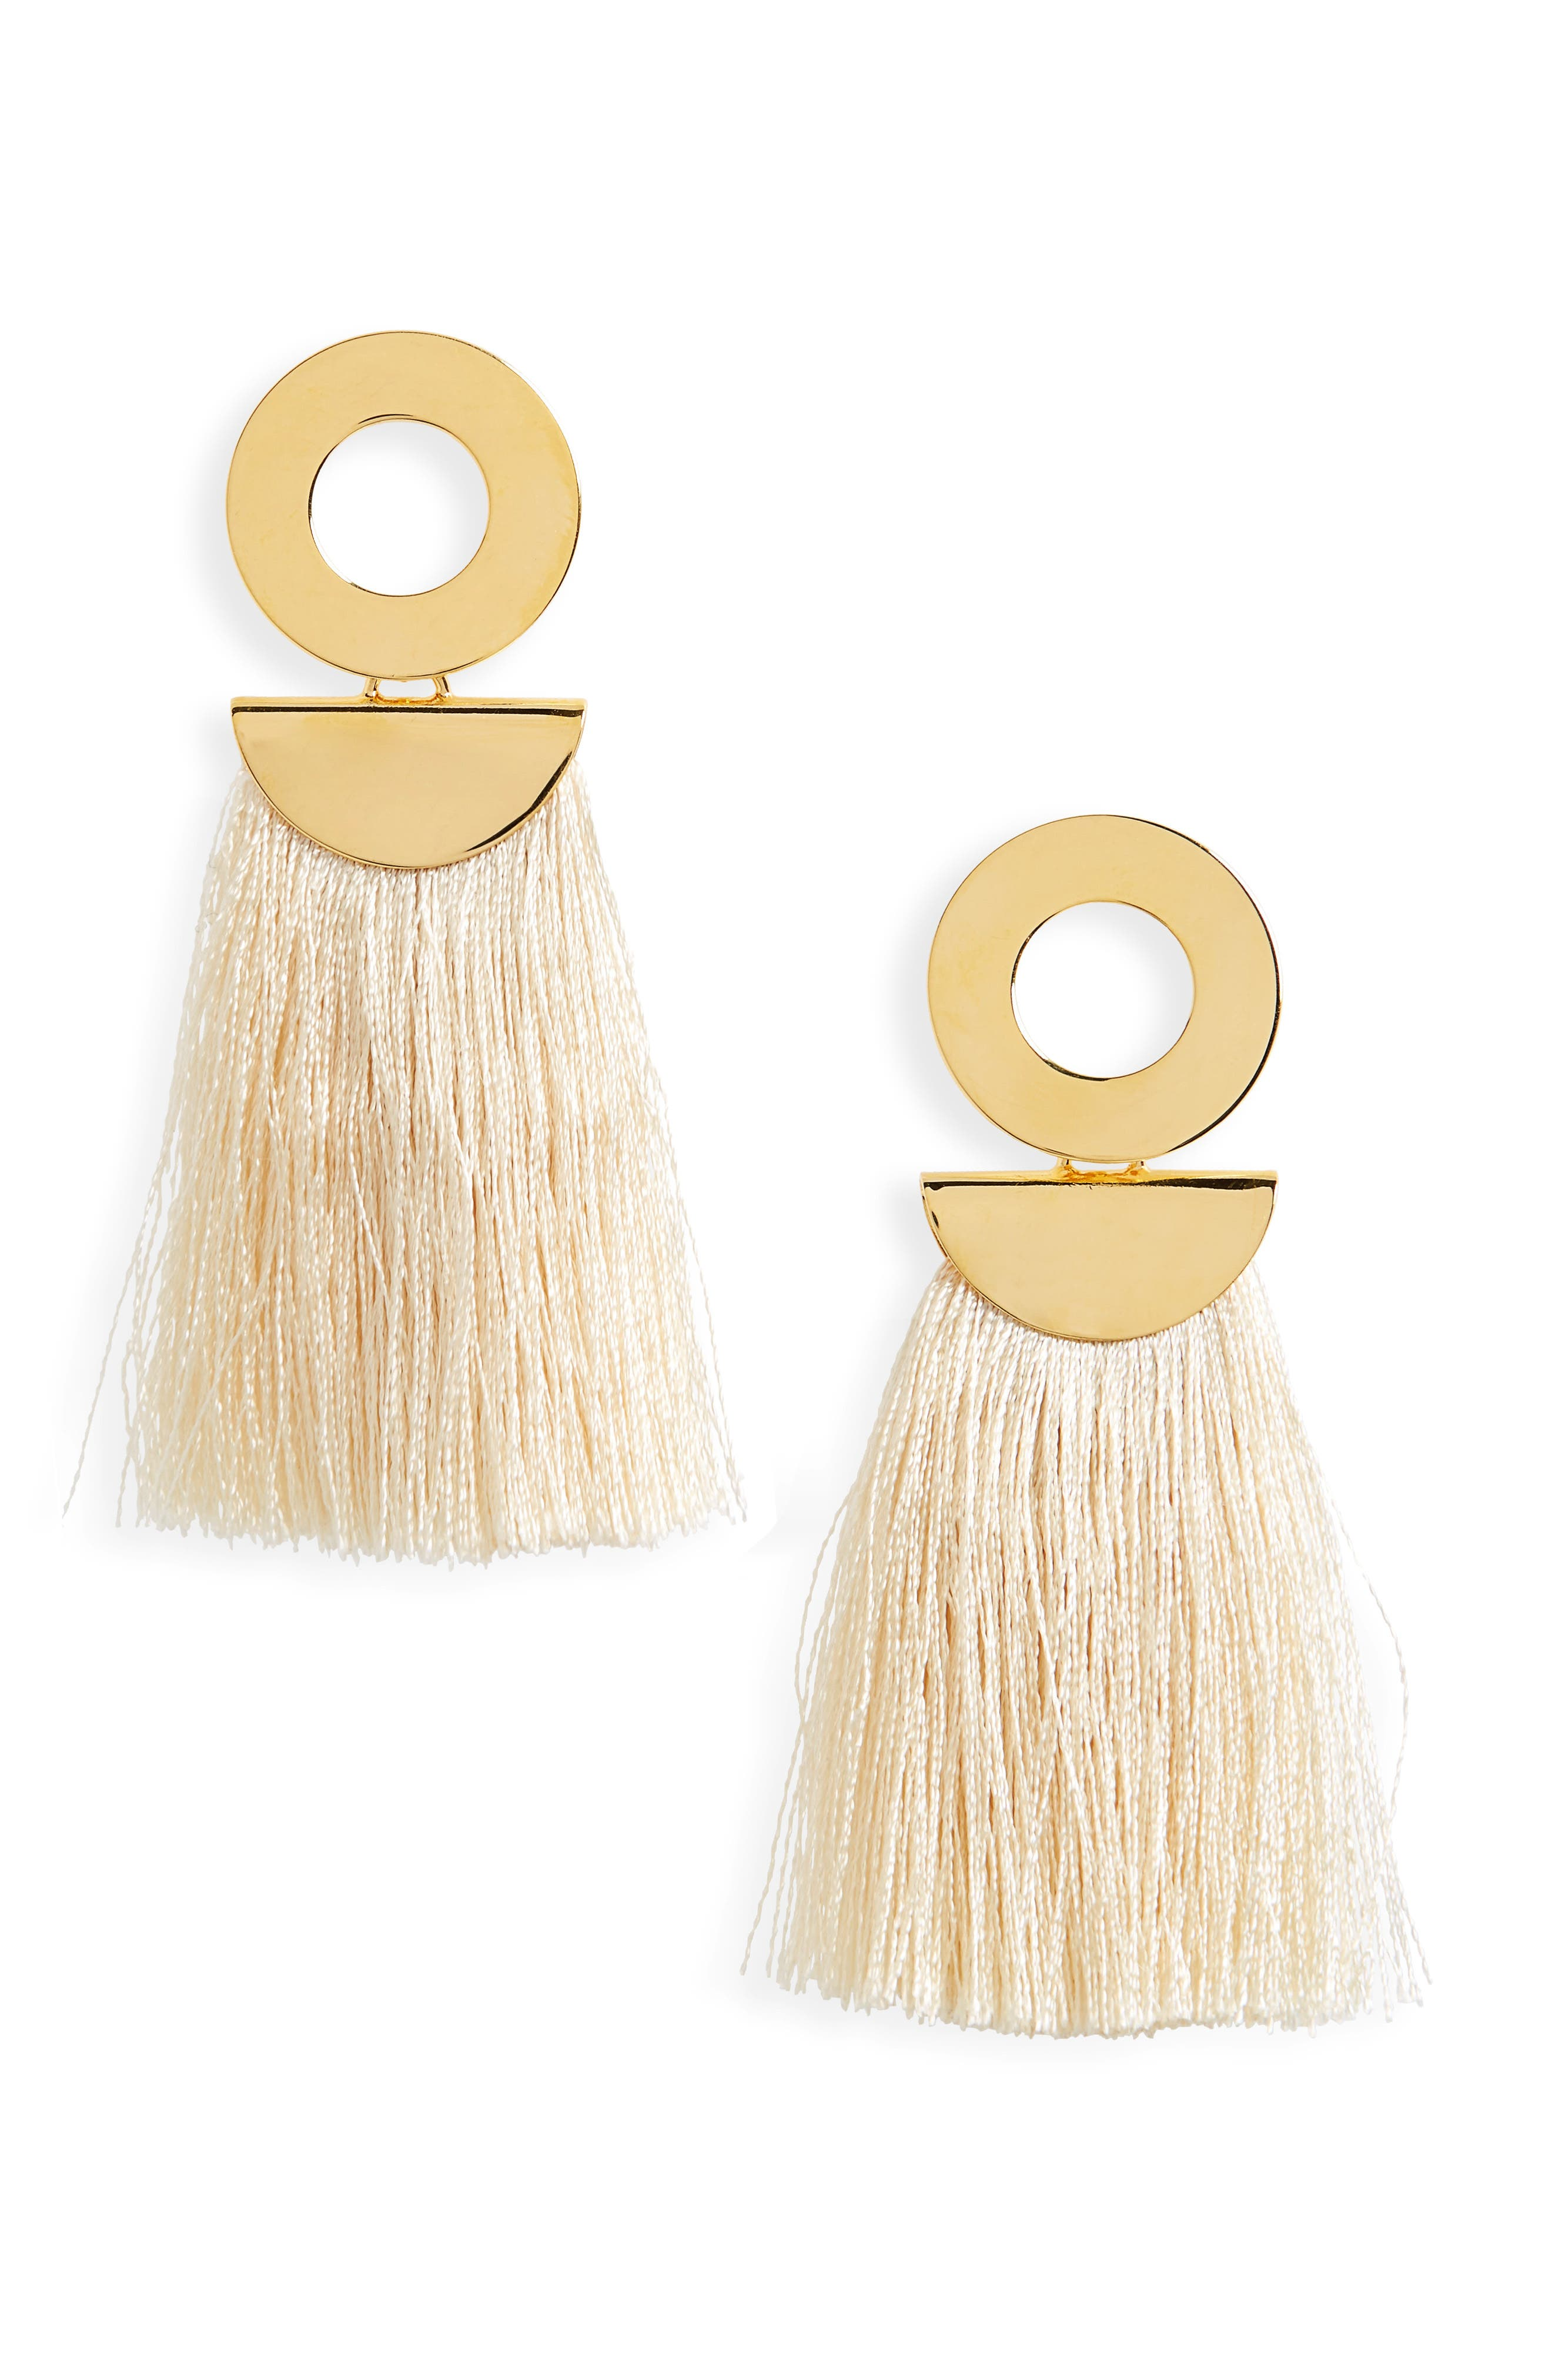 Go-Go Crater Tassel Drop Earrings,                         Main,                         color, White/ Gold